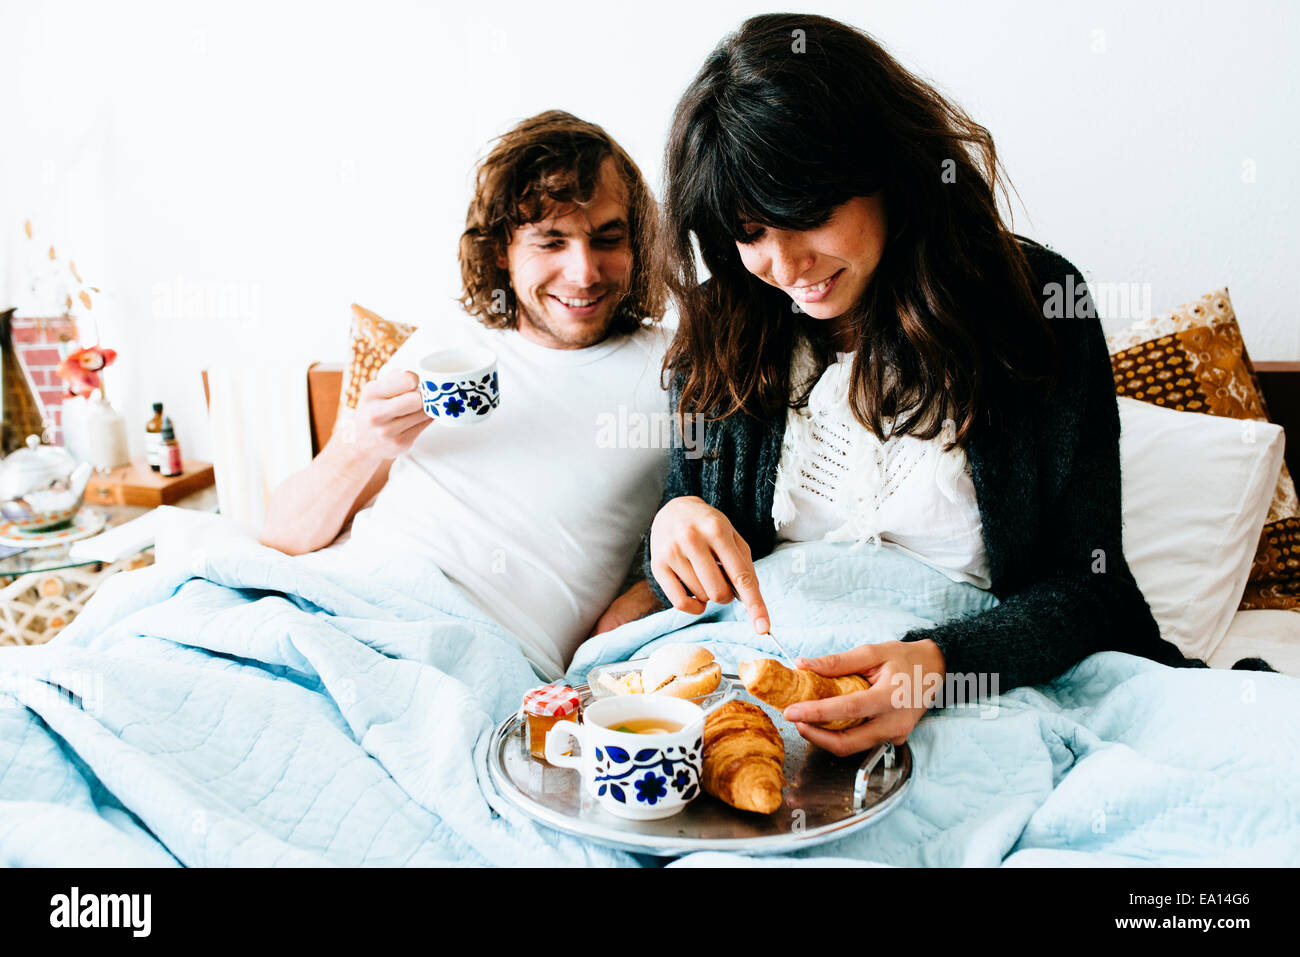 Couple having breakfast in bed - Stock Image